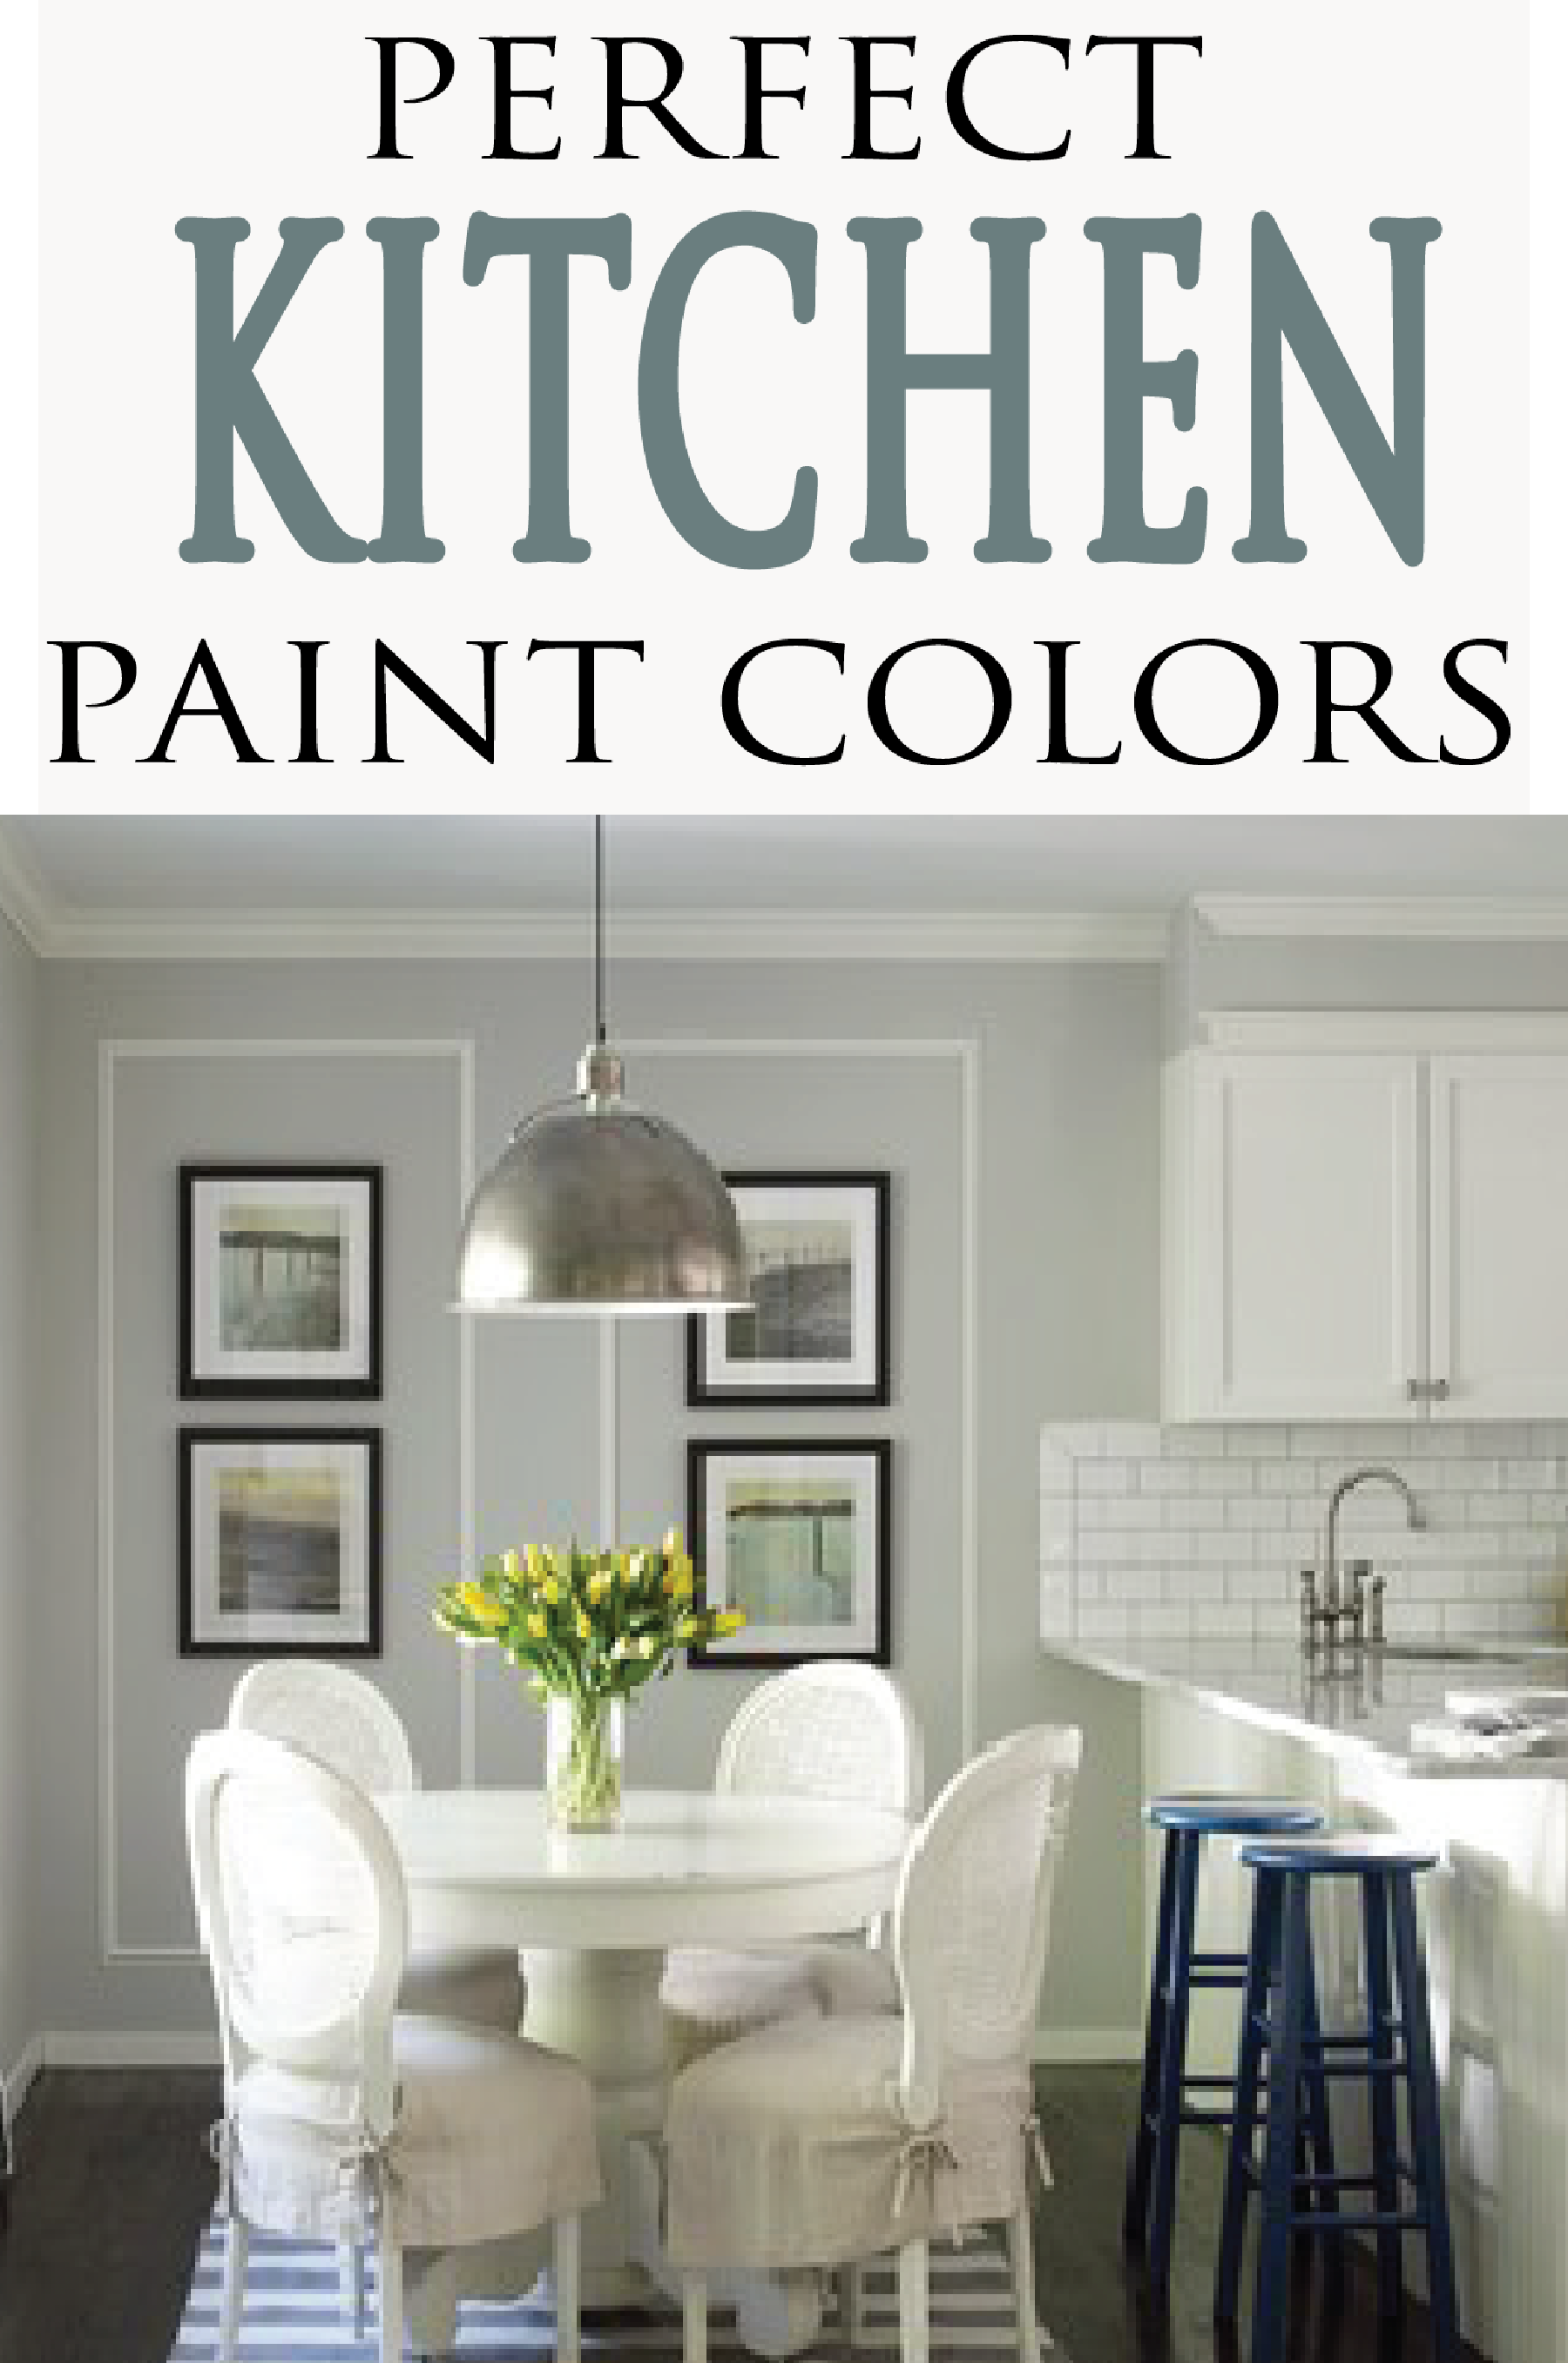 Check out these beautiful kitchen color schemes for your new home or remodel.  Get inspired for your DIY home project!